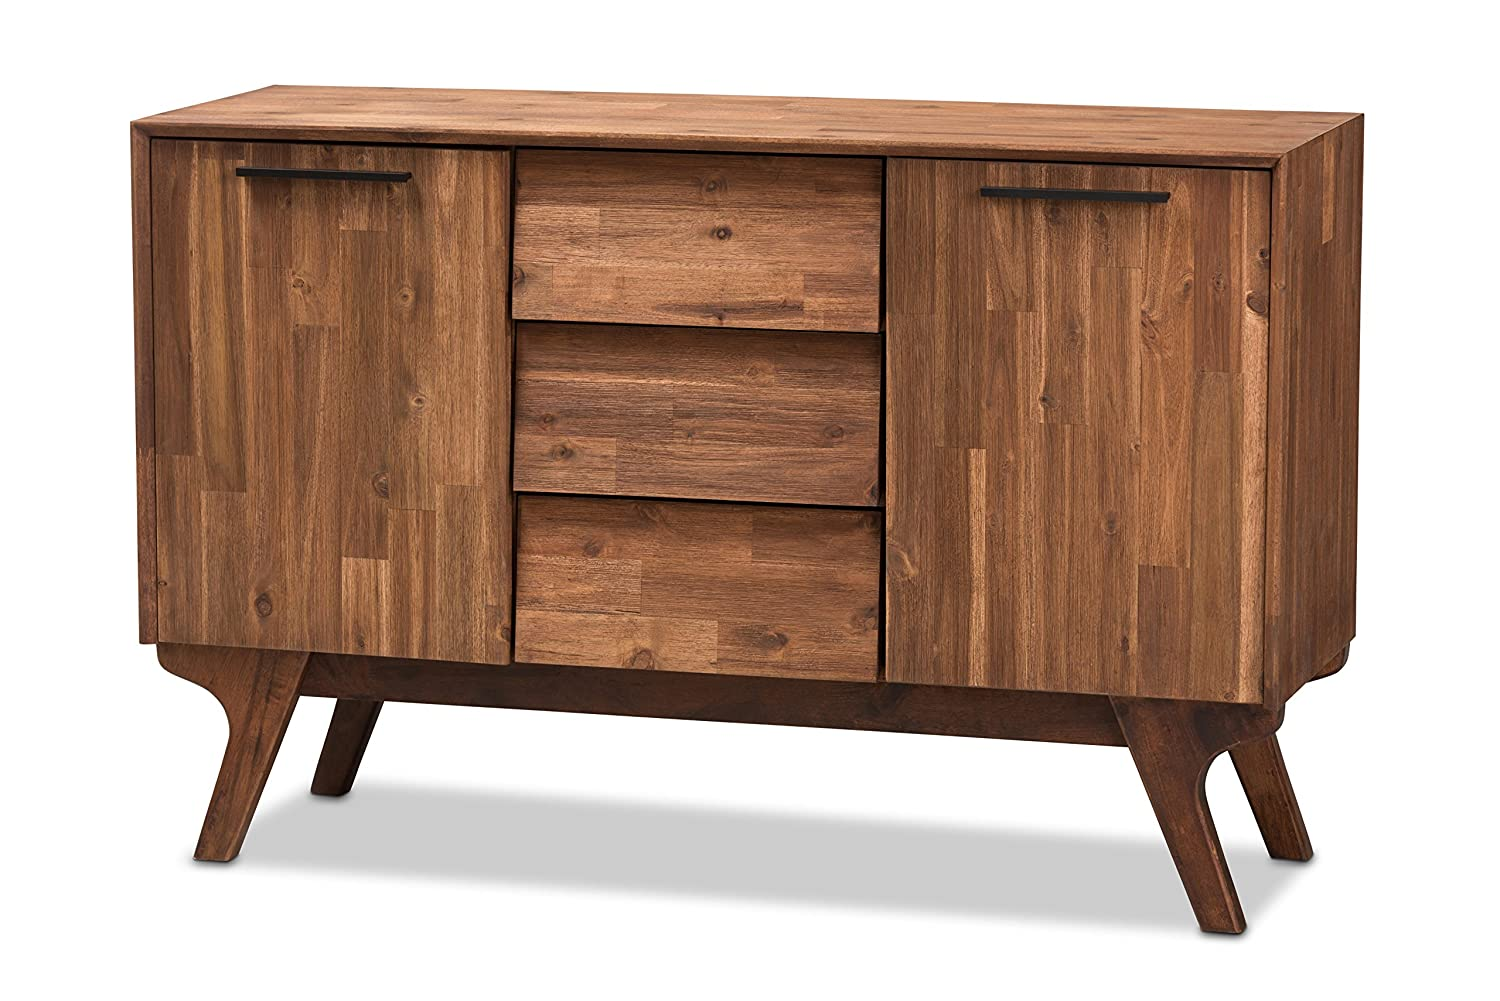 Baxton Studio Serena Mid-Century Modern Brown Wood 3-Drawer Sideboard Wholesale Interiors 142-424-7648-AMZ